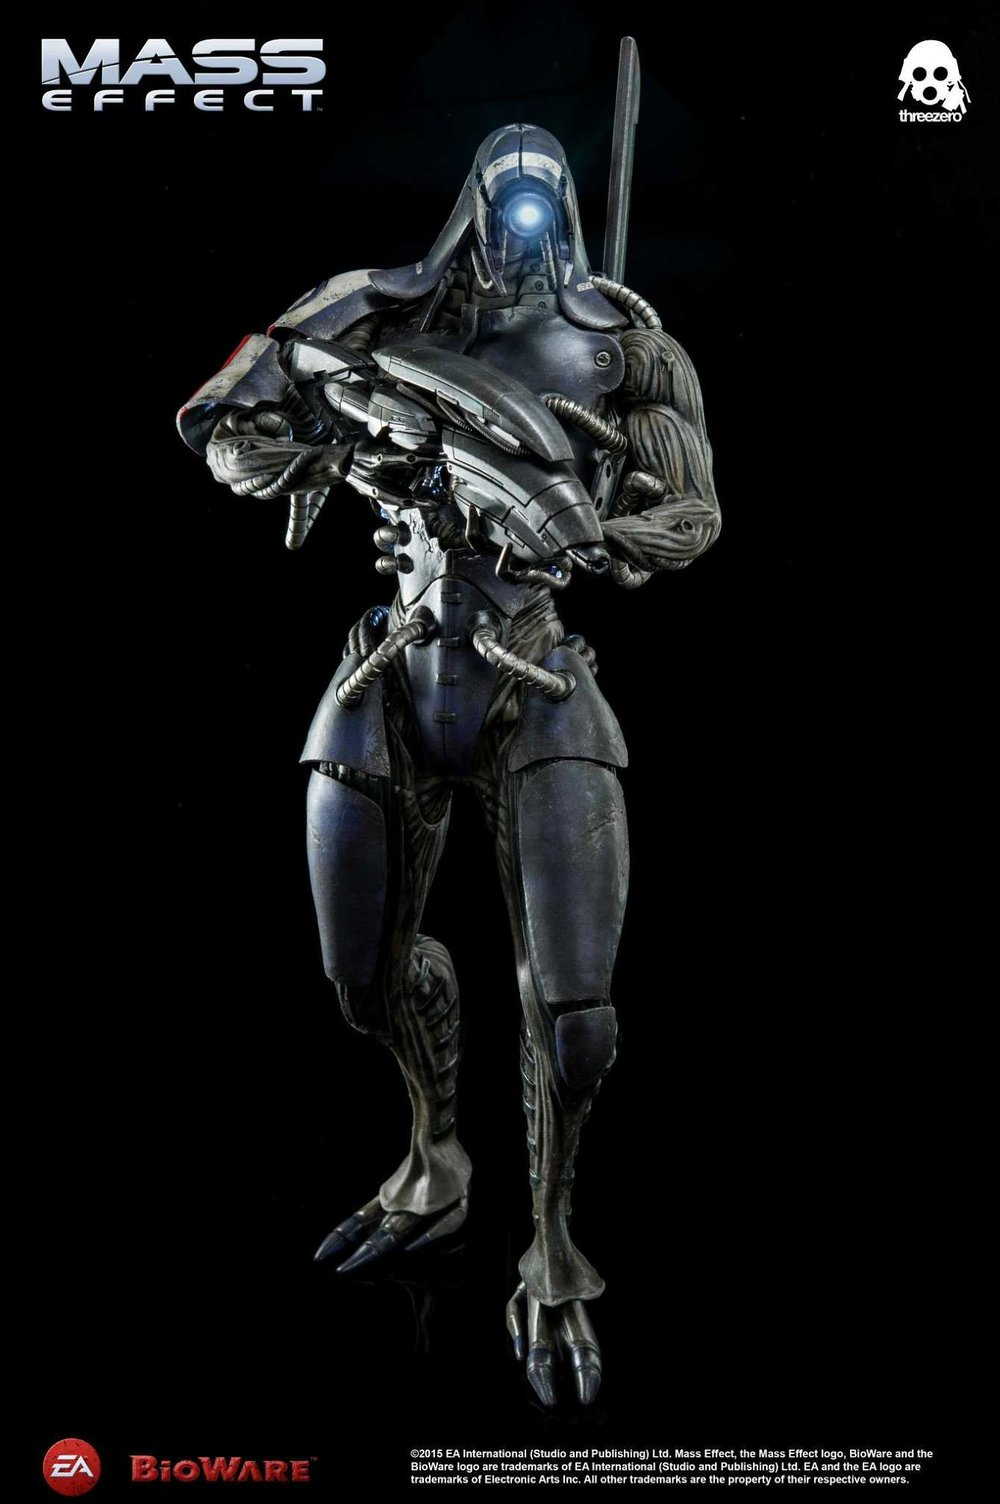 ThreeZero-Bioware-video-game-Legion-Mass-Effect-figure-6_1340_c.jpg